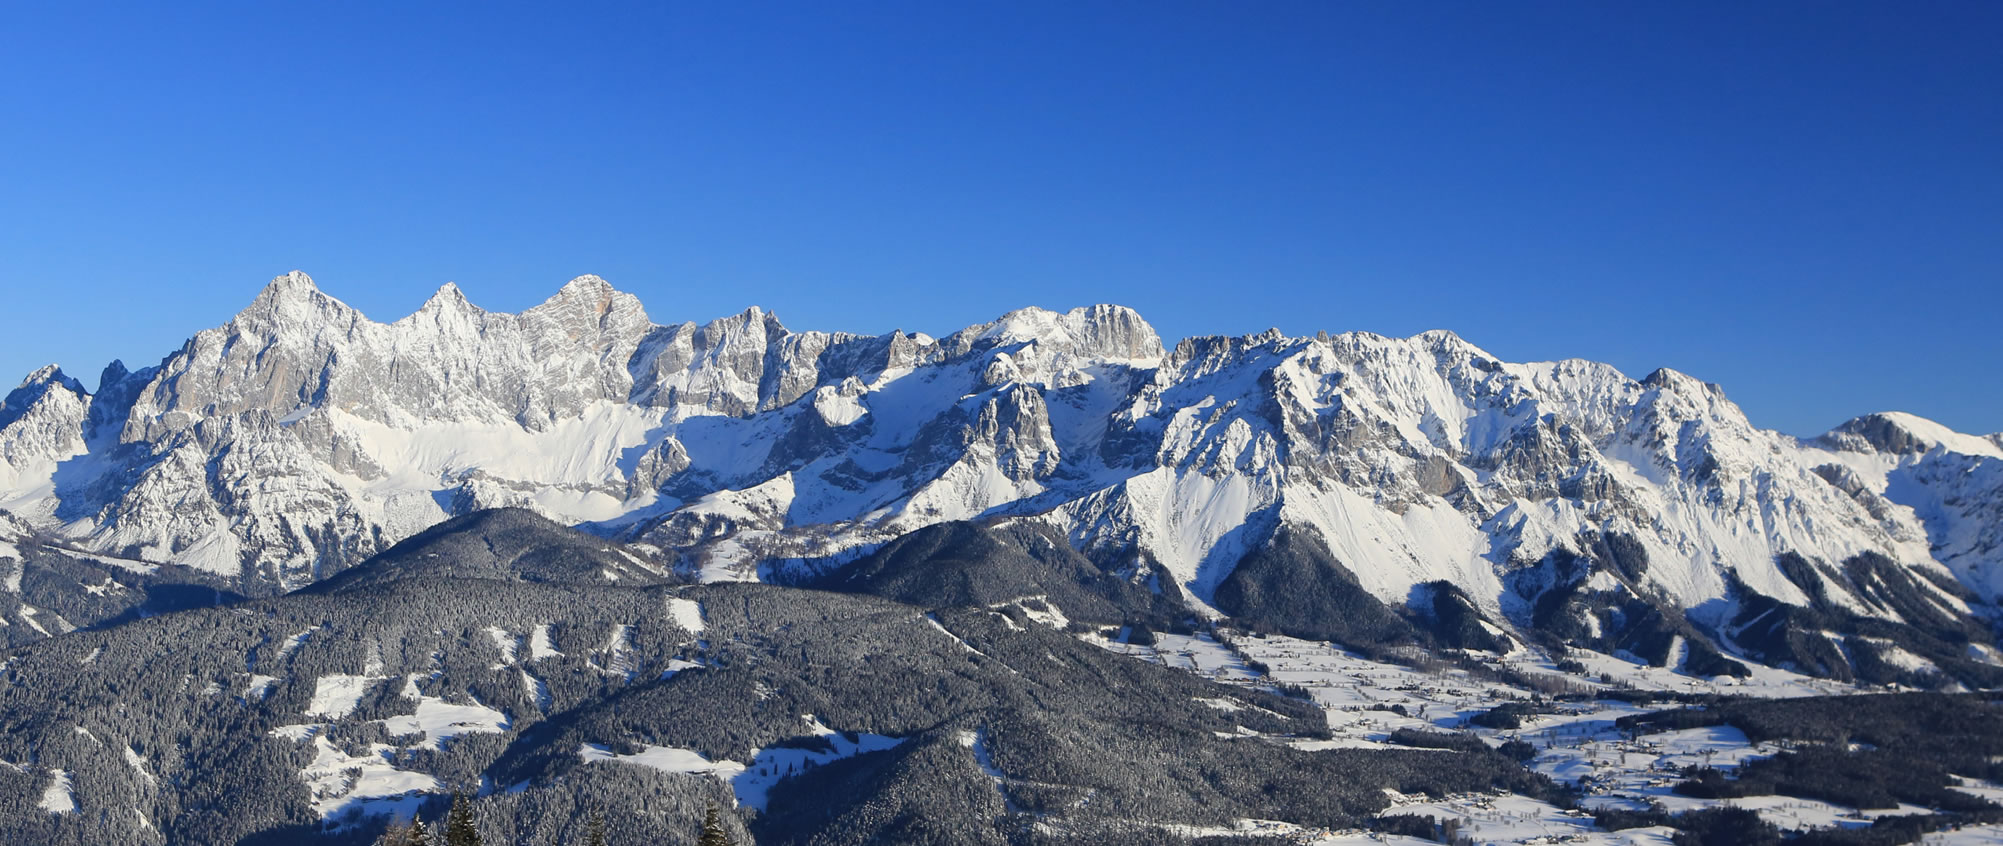 Winterlandschaft in Ramsau am Dachstein